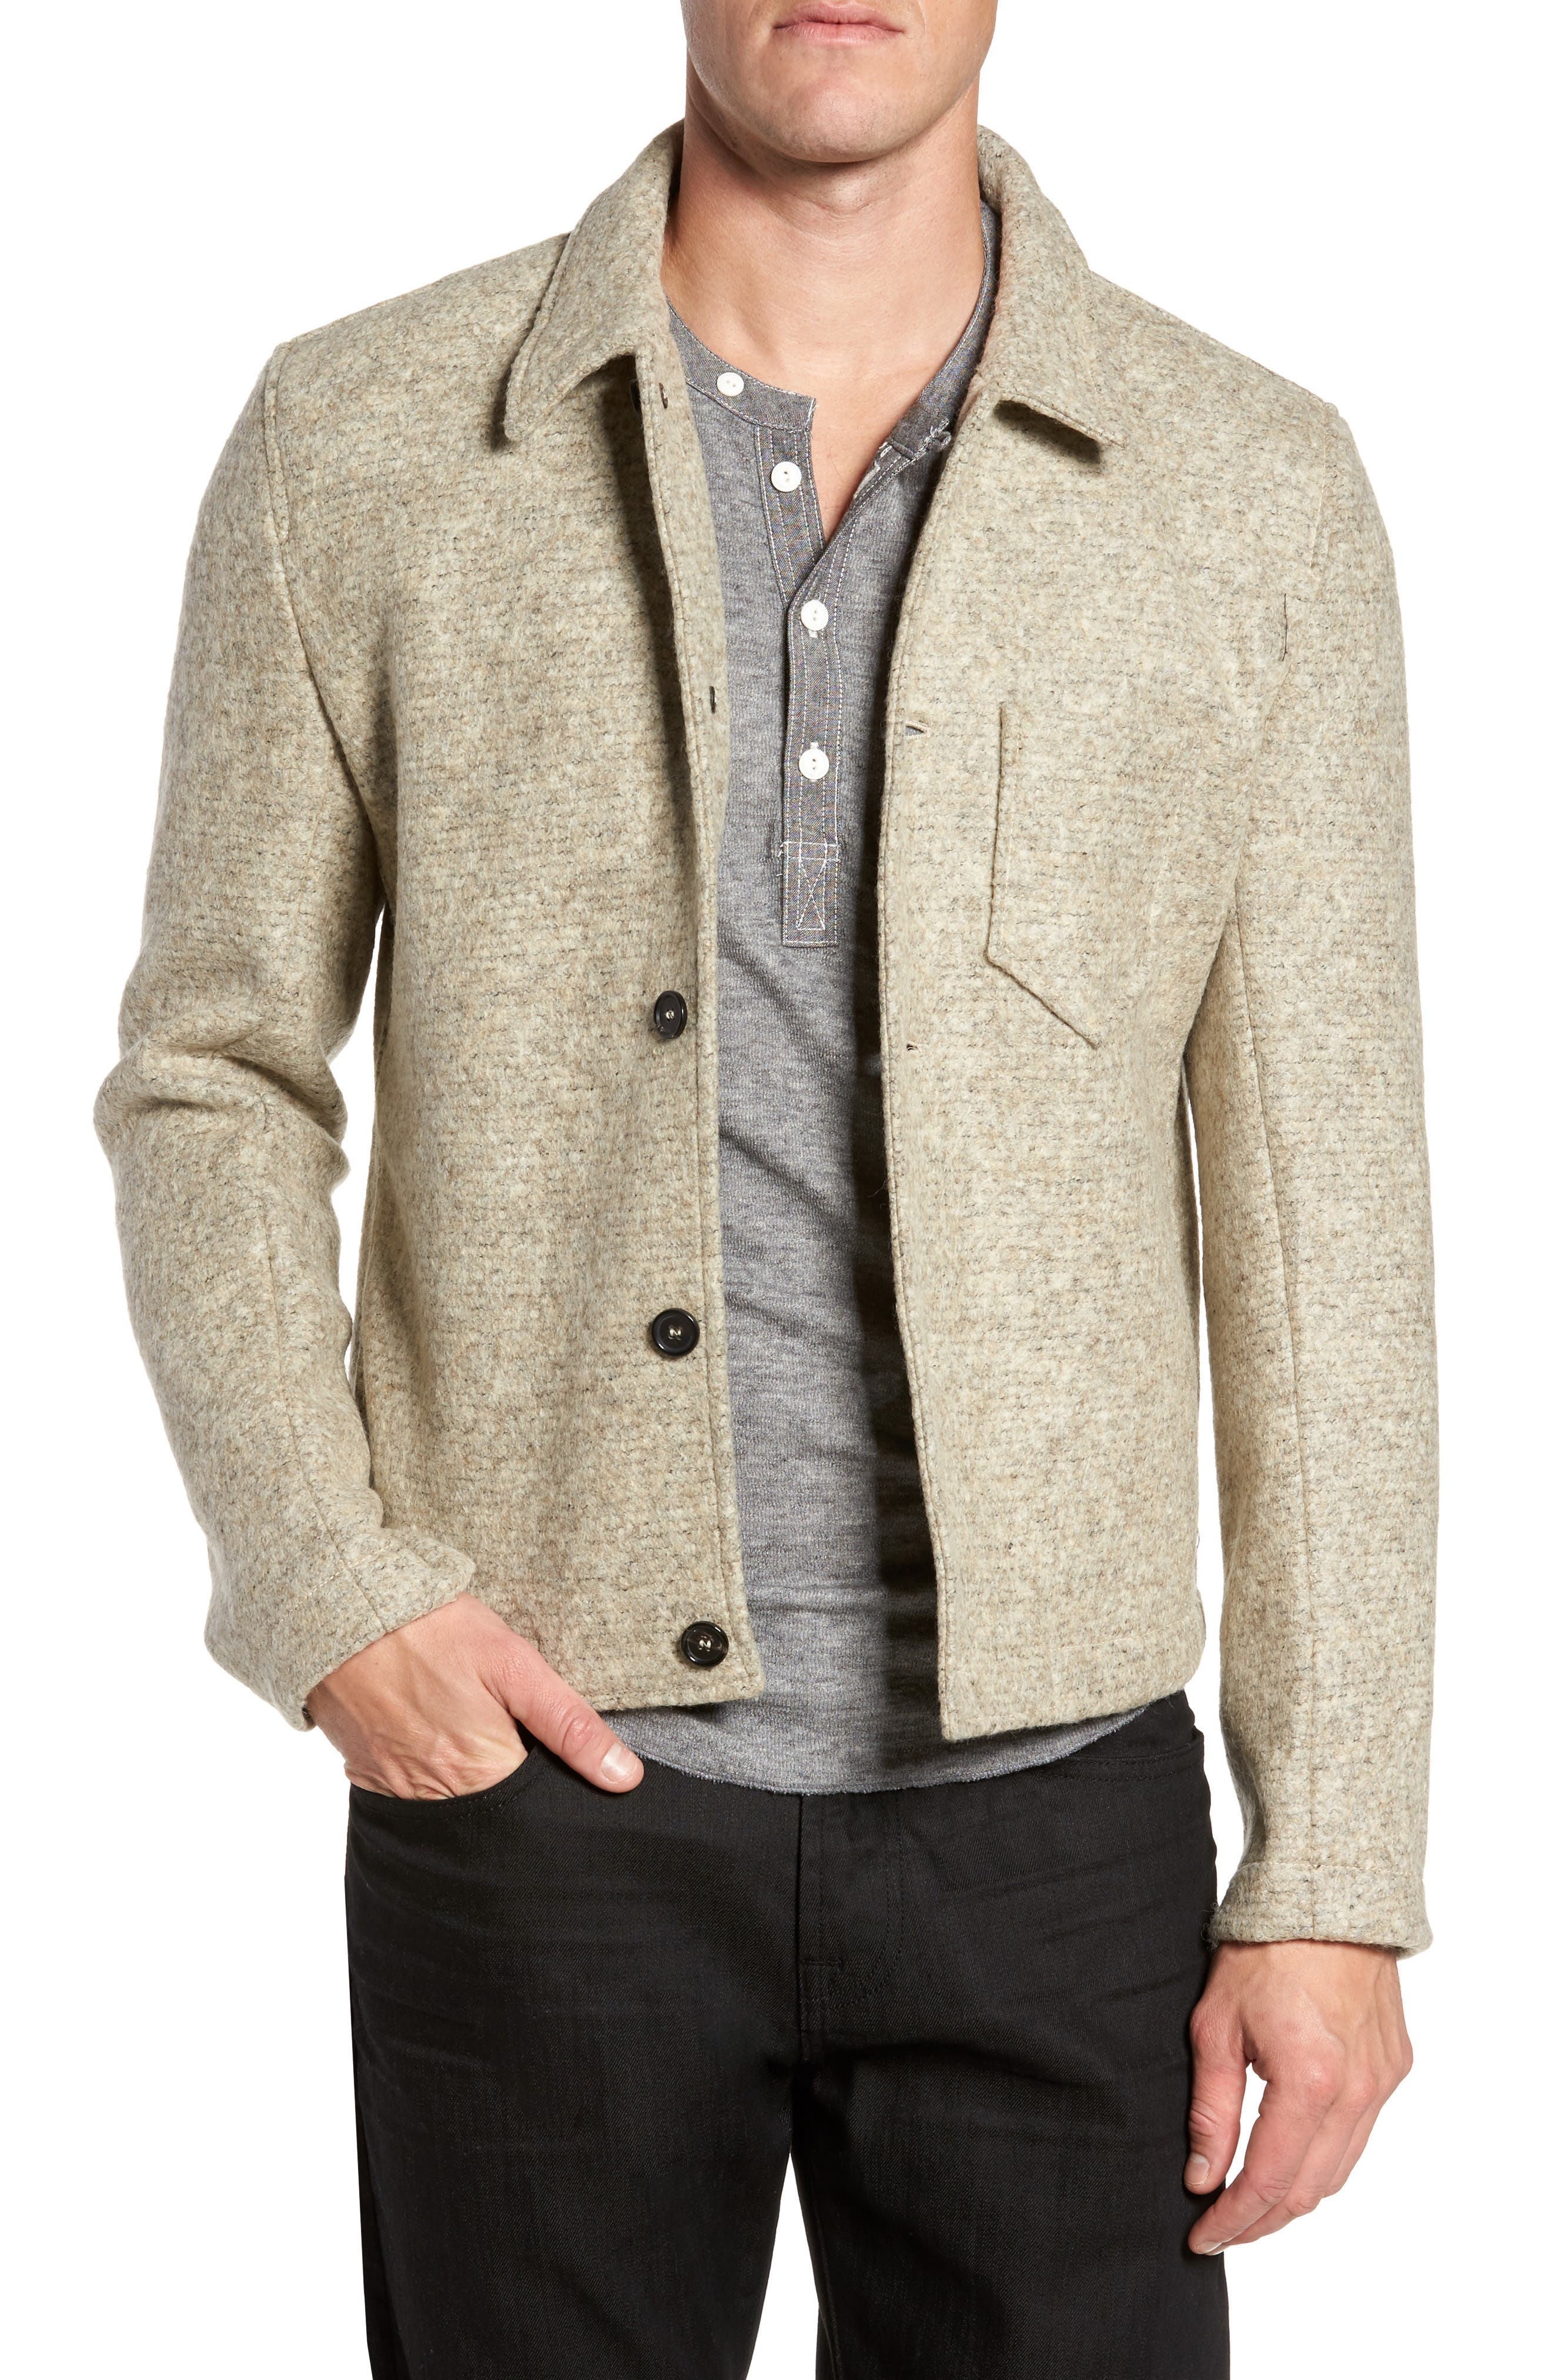 Main Image - Billy Reid Gunner Wool Blend Jacket